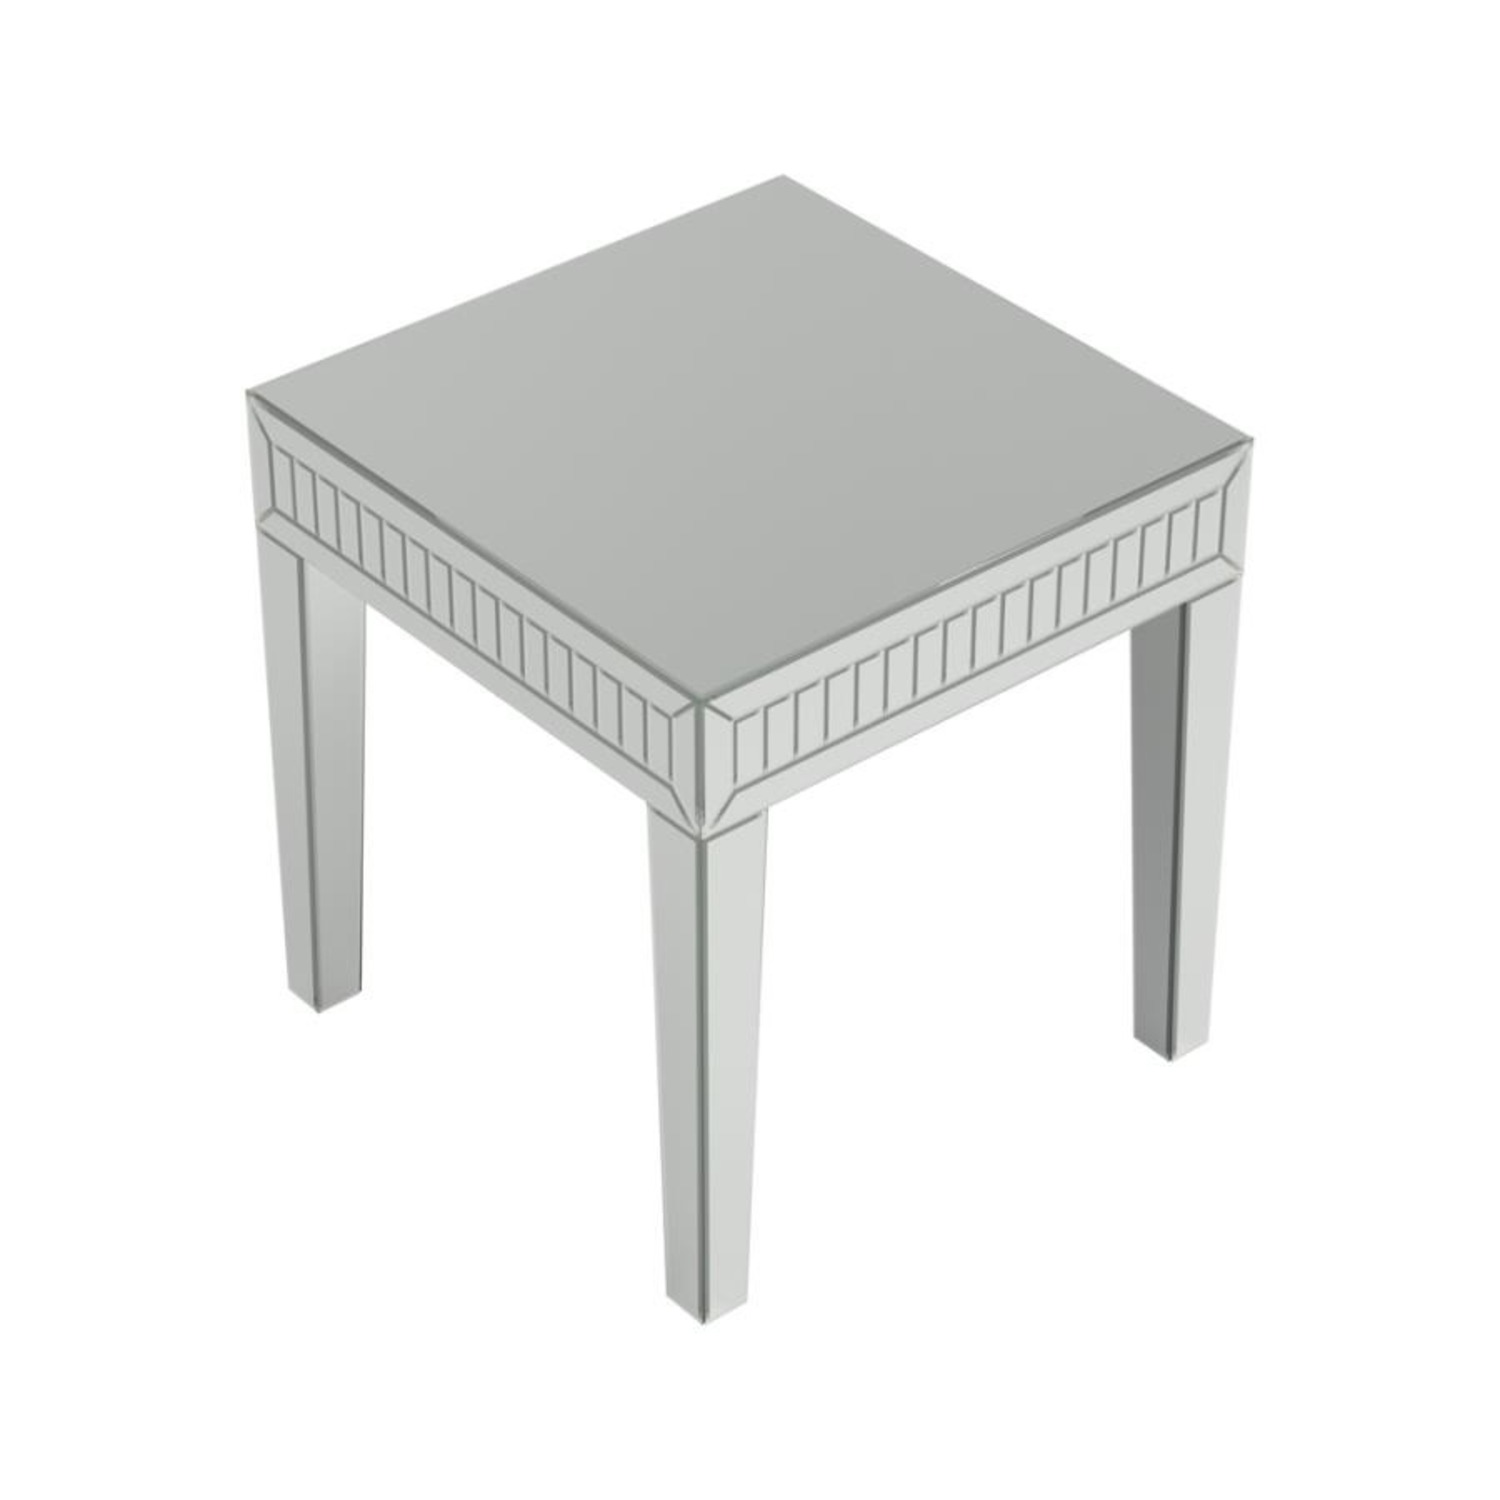 Ultra-Glam Side Table In Silver Finish - image-2